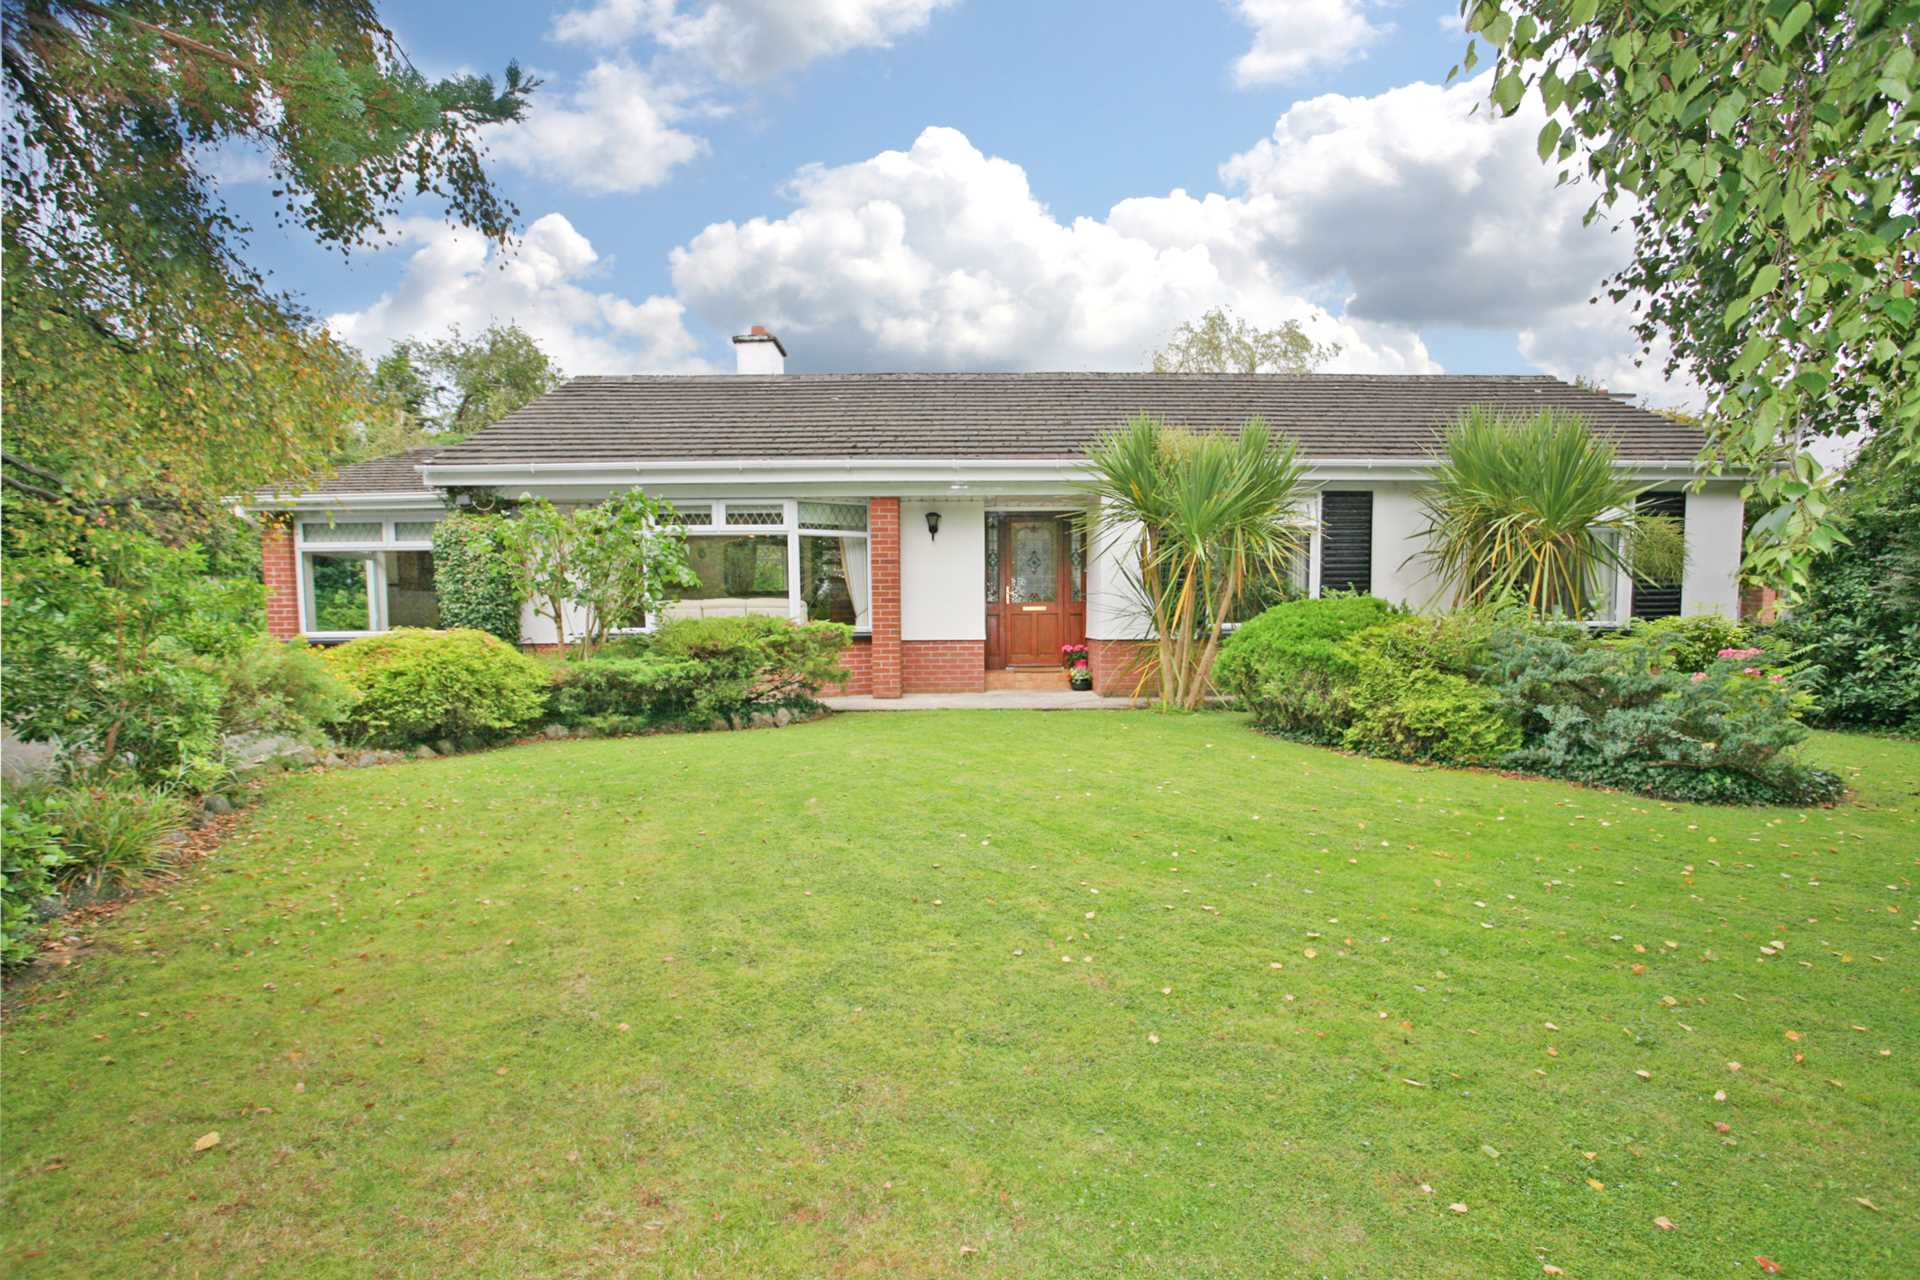 44 Monaleen Heights, Castletroy, Co. Limerick